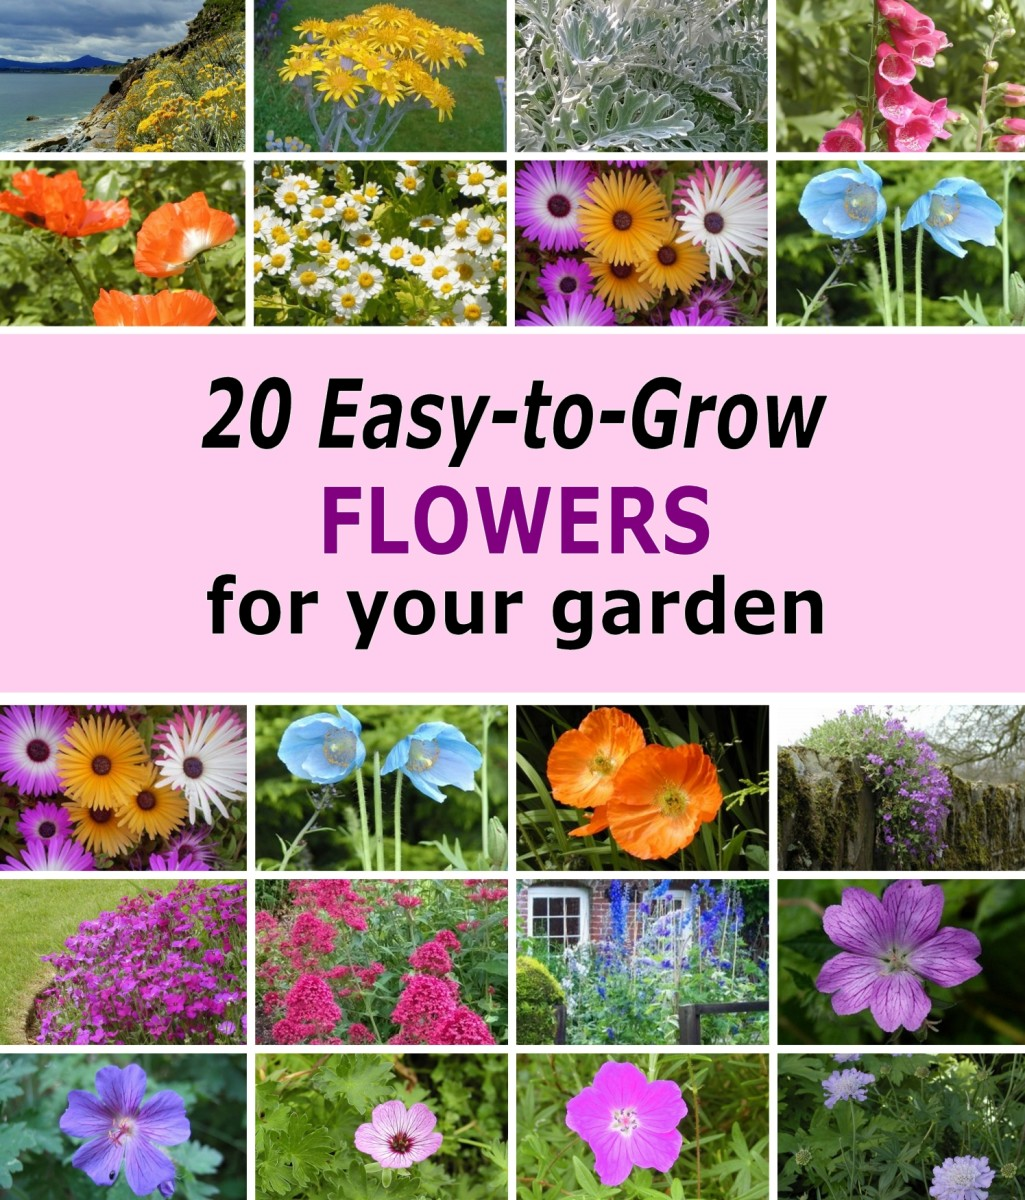 20 Easy-to-Grow Flowers for Garden Colour